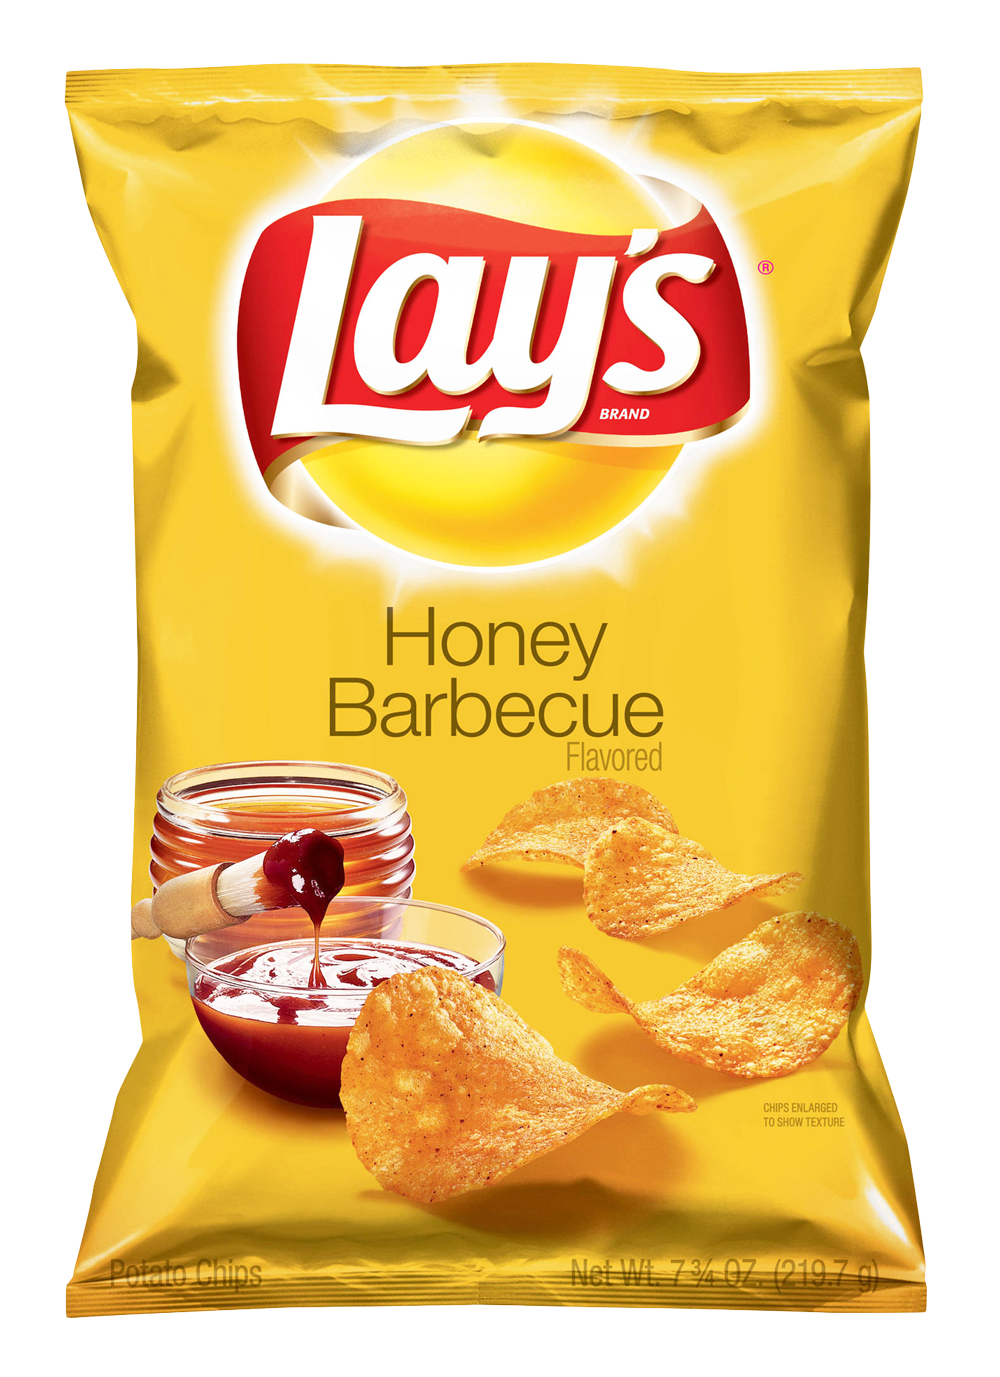 Lays Potato Chips Pack Honey Barbecue Lays Potato Chips Potato Chips